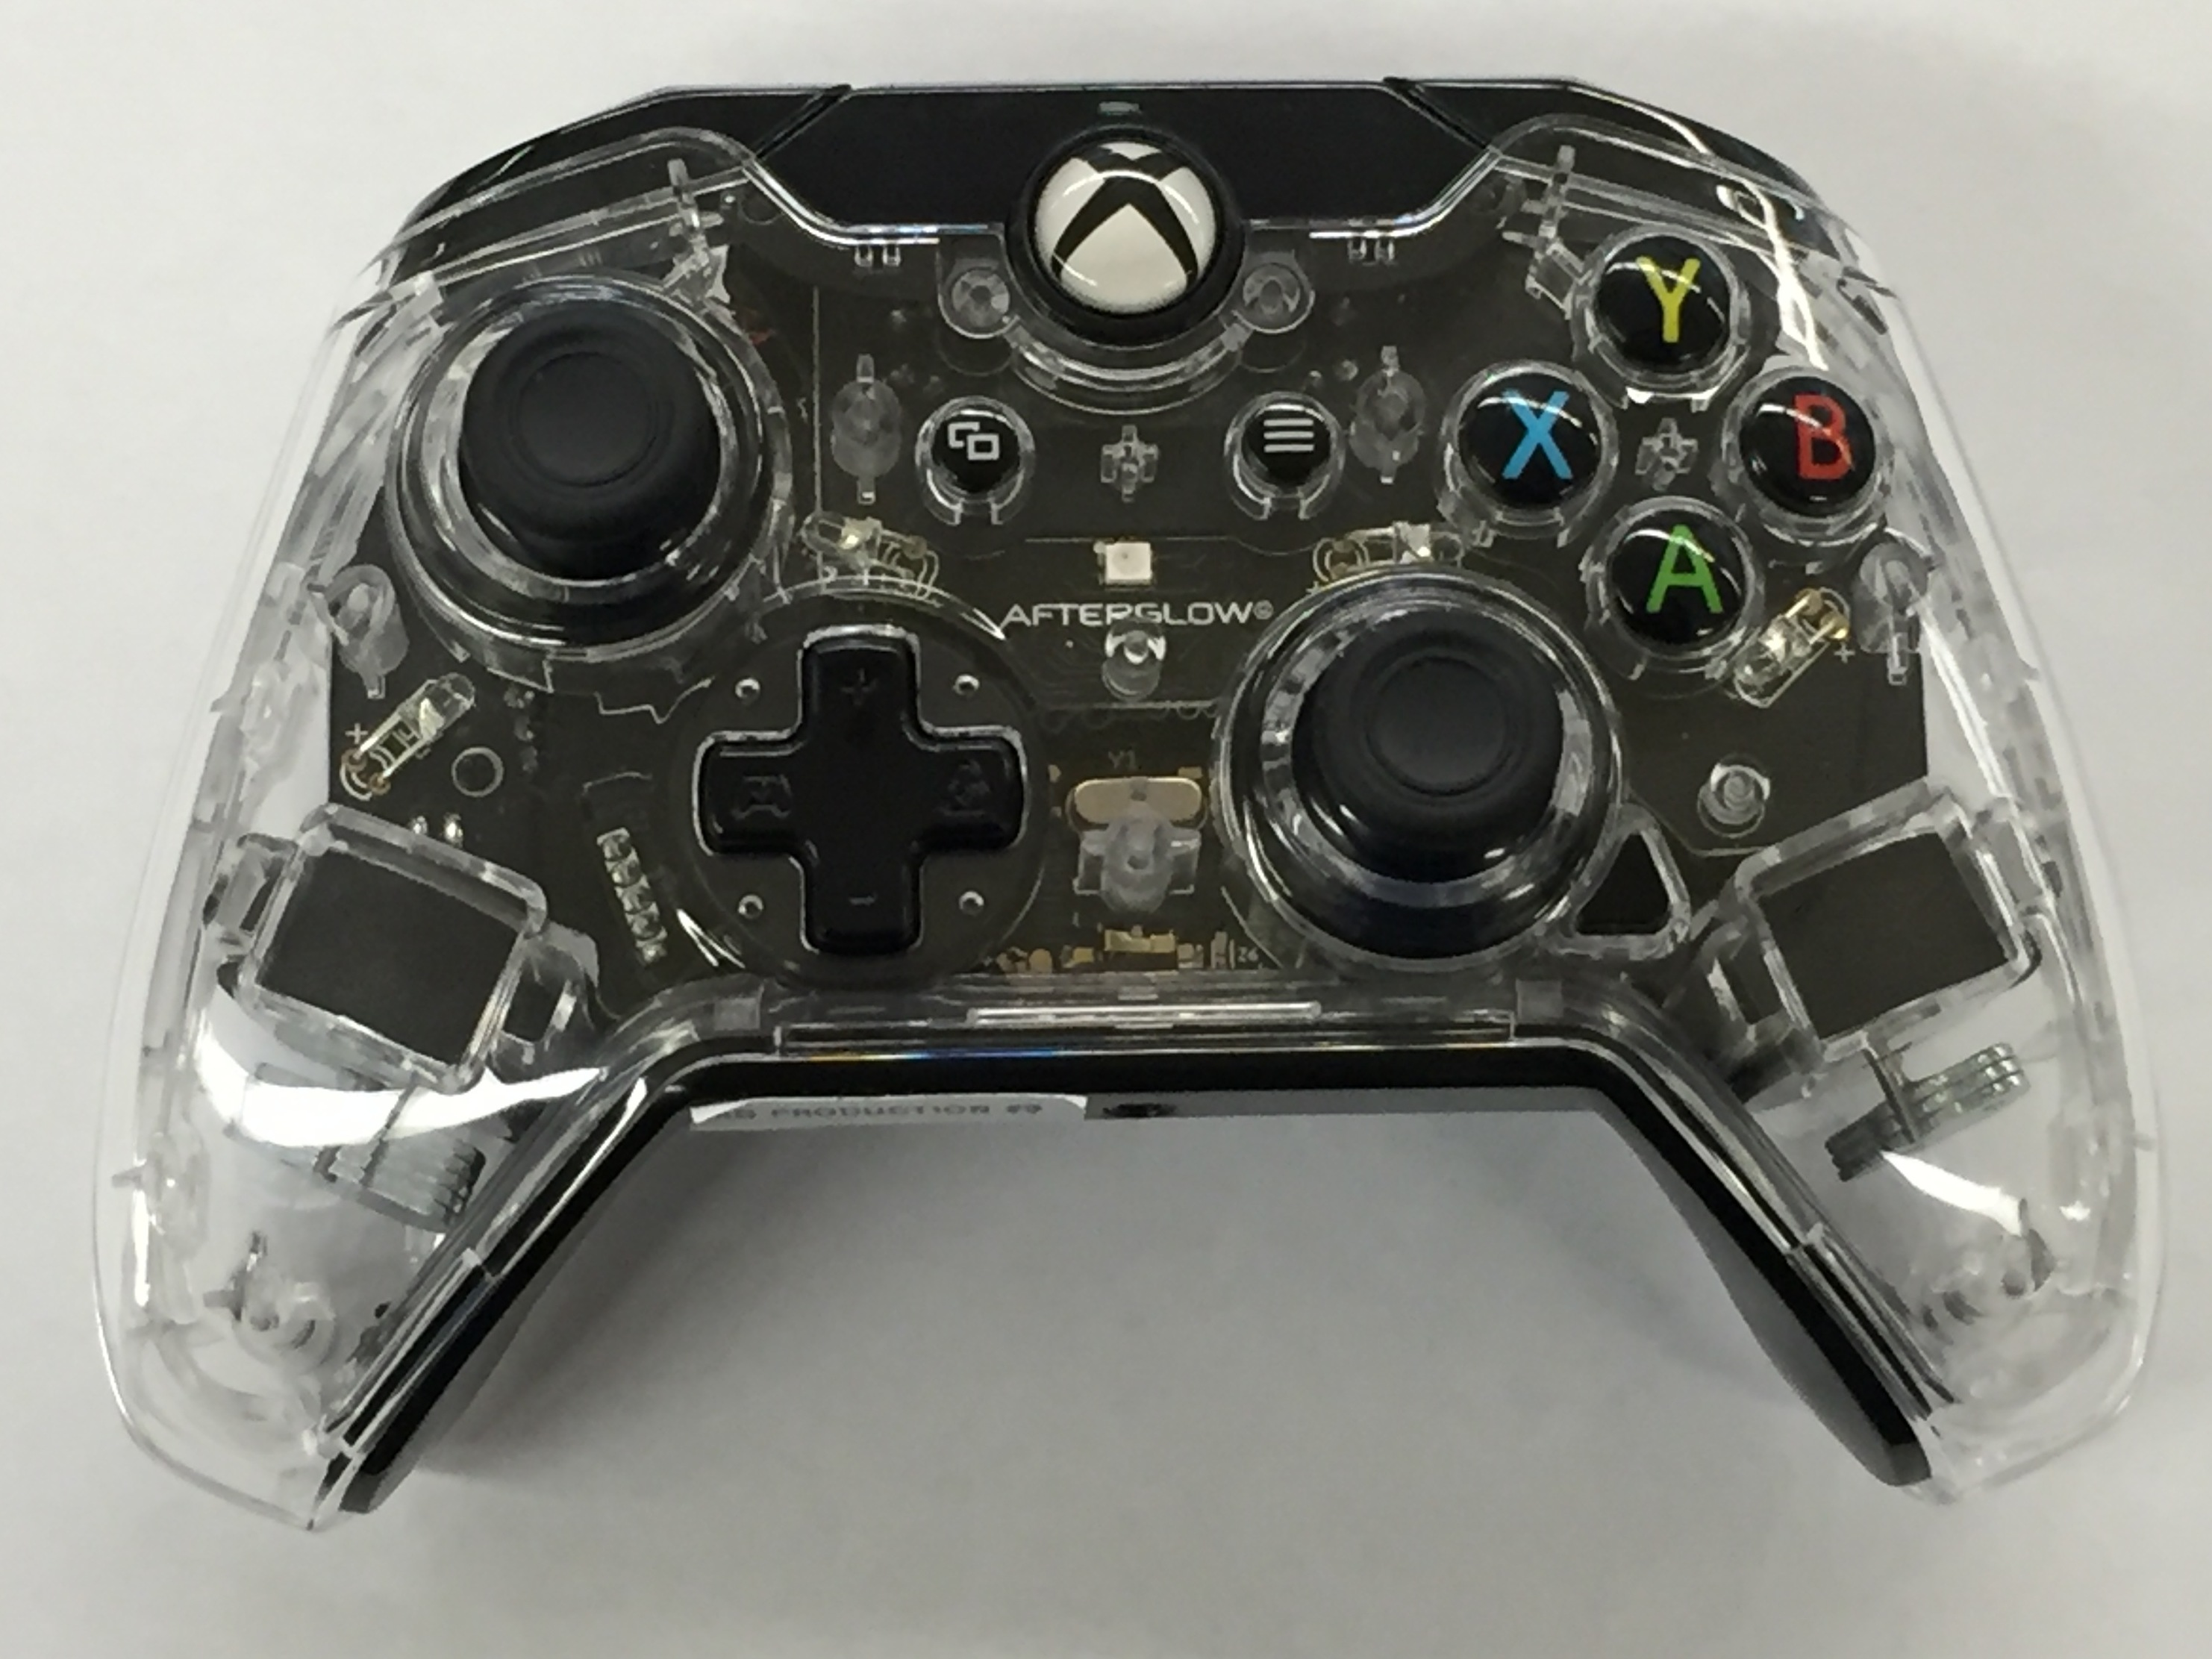 Afterglow Prismatic Wired Controller for Xbox One Teardown - iFixit